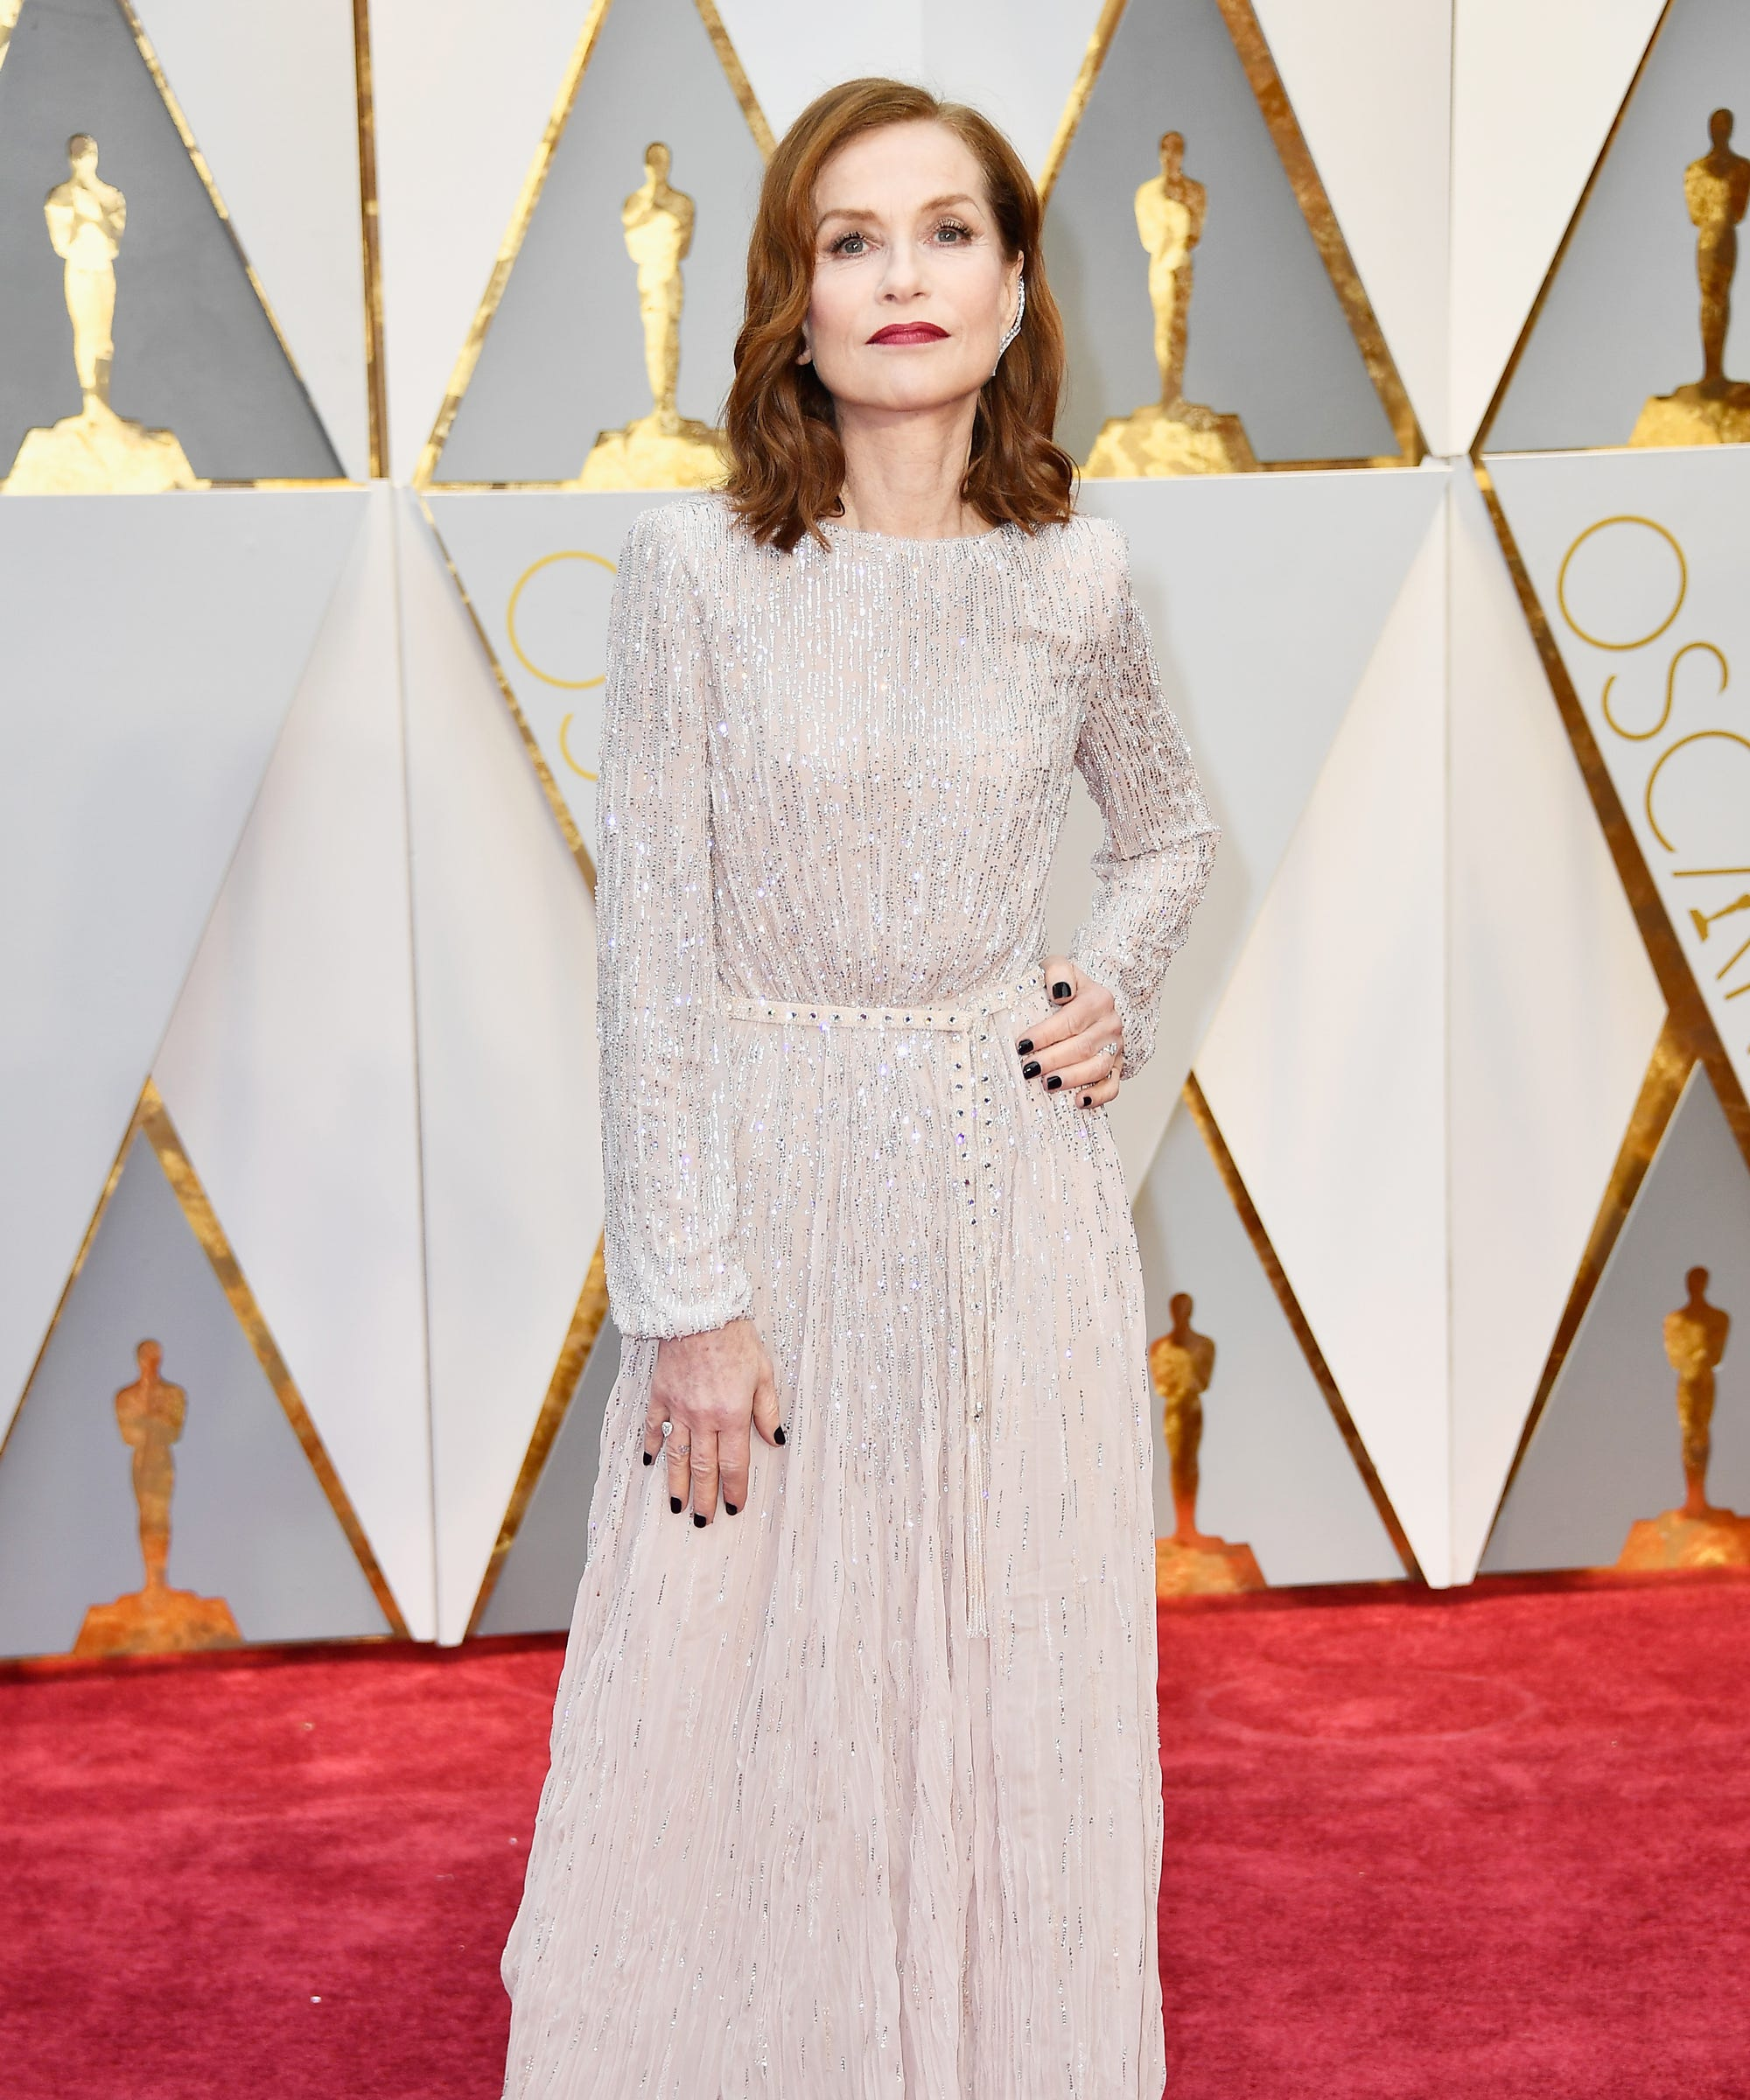 Roter Teppich Los Angeles Oscars Looks Kleider Outfits Red Carpet Roter Teppich